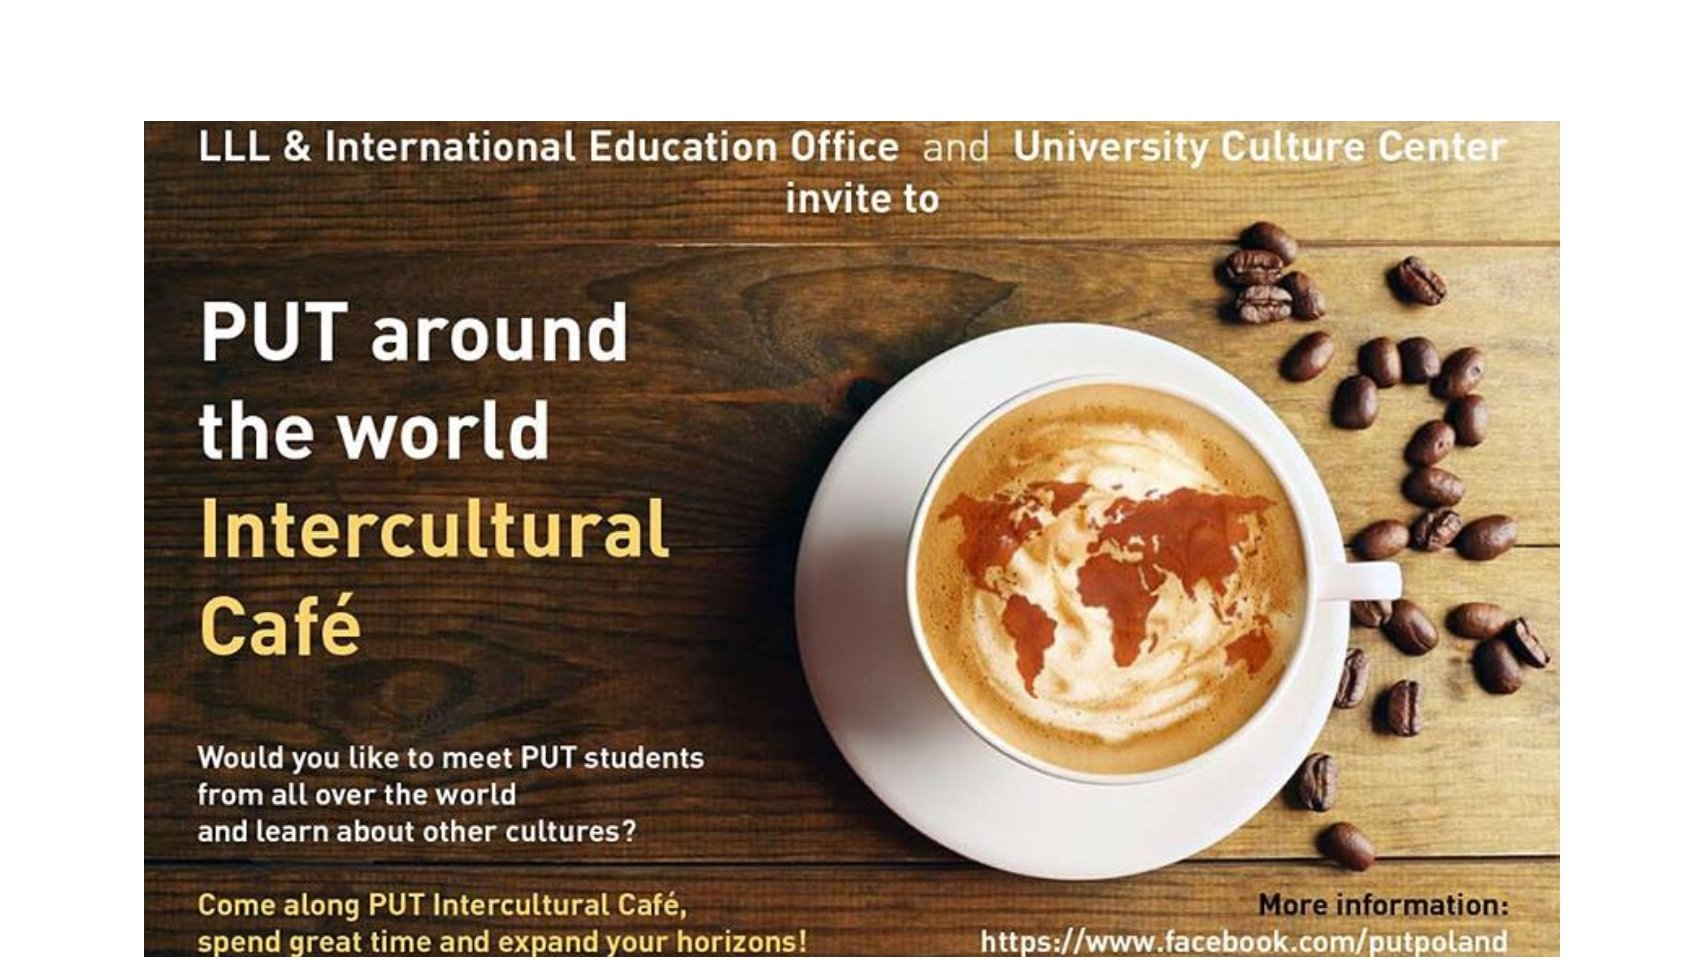 PUT around the world - Intercultural Café